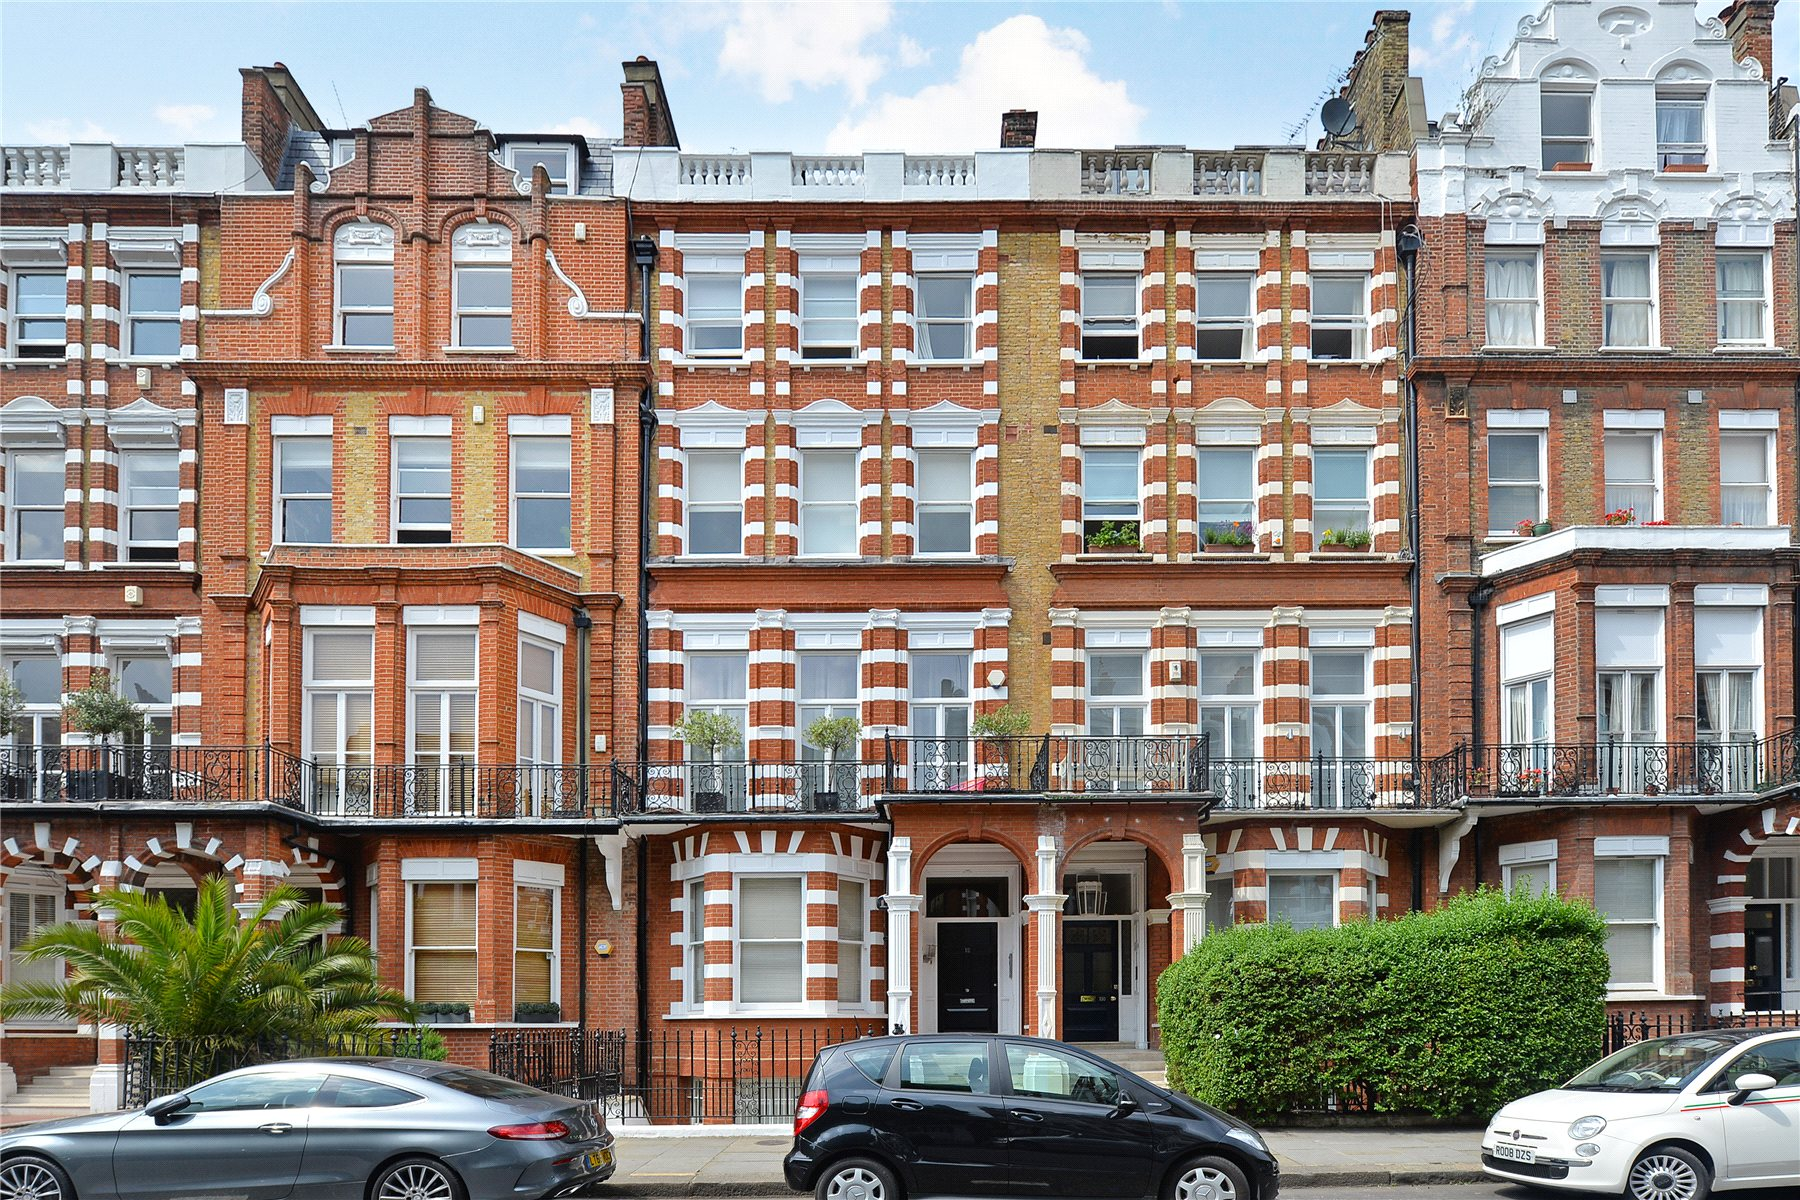 2 Bedroom Garden Flat London 2 Bedroom Flat For Sale Bramham Gardens London Sw5 0jj